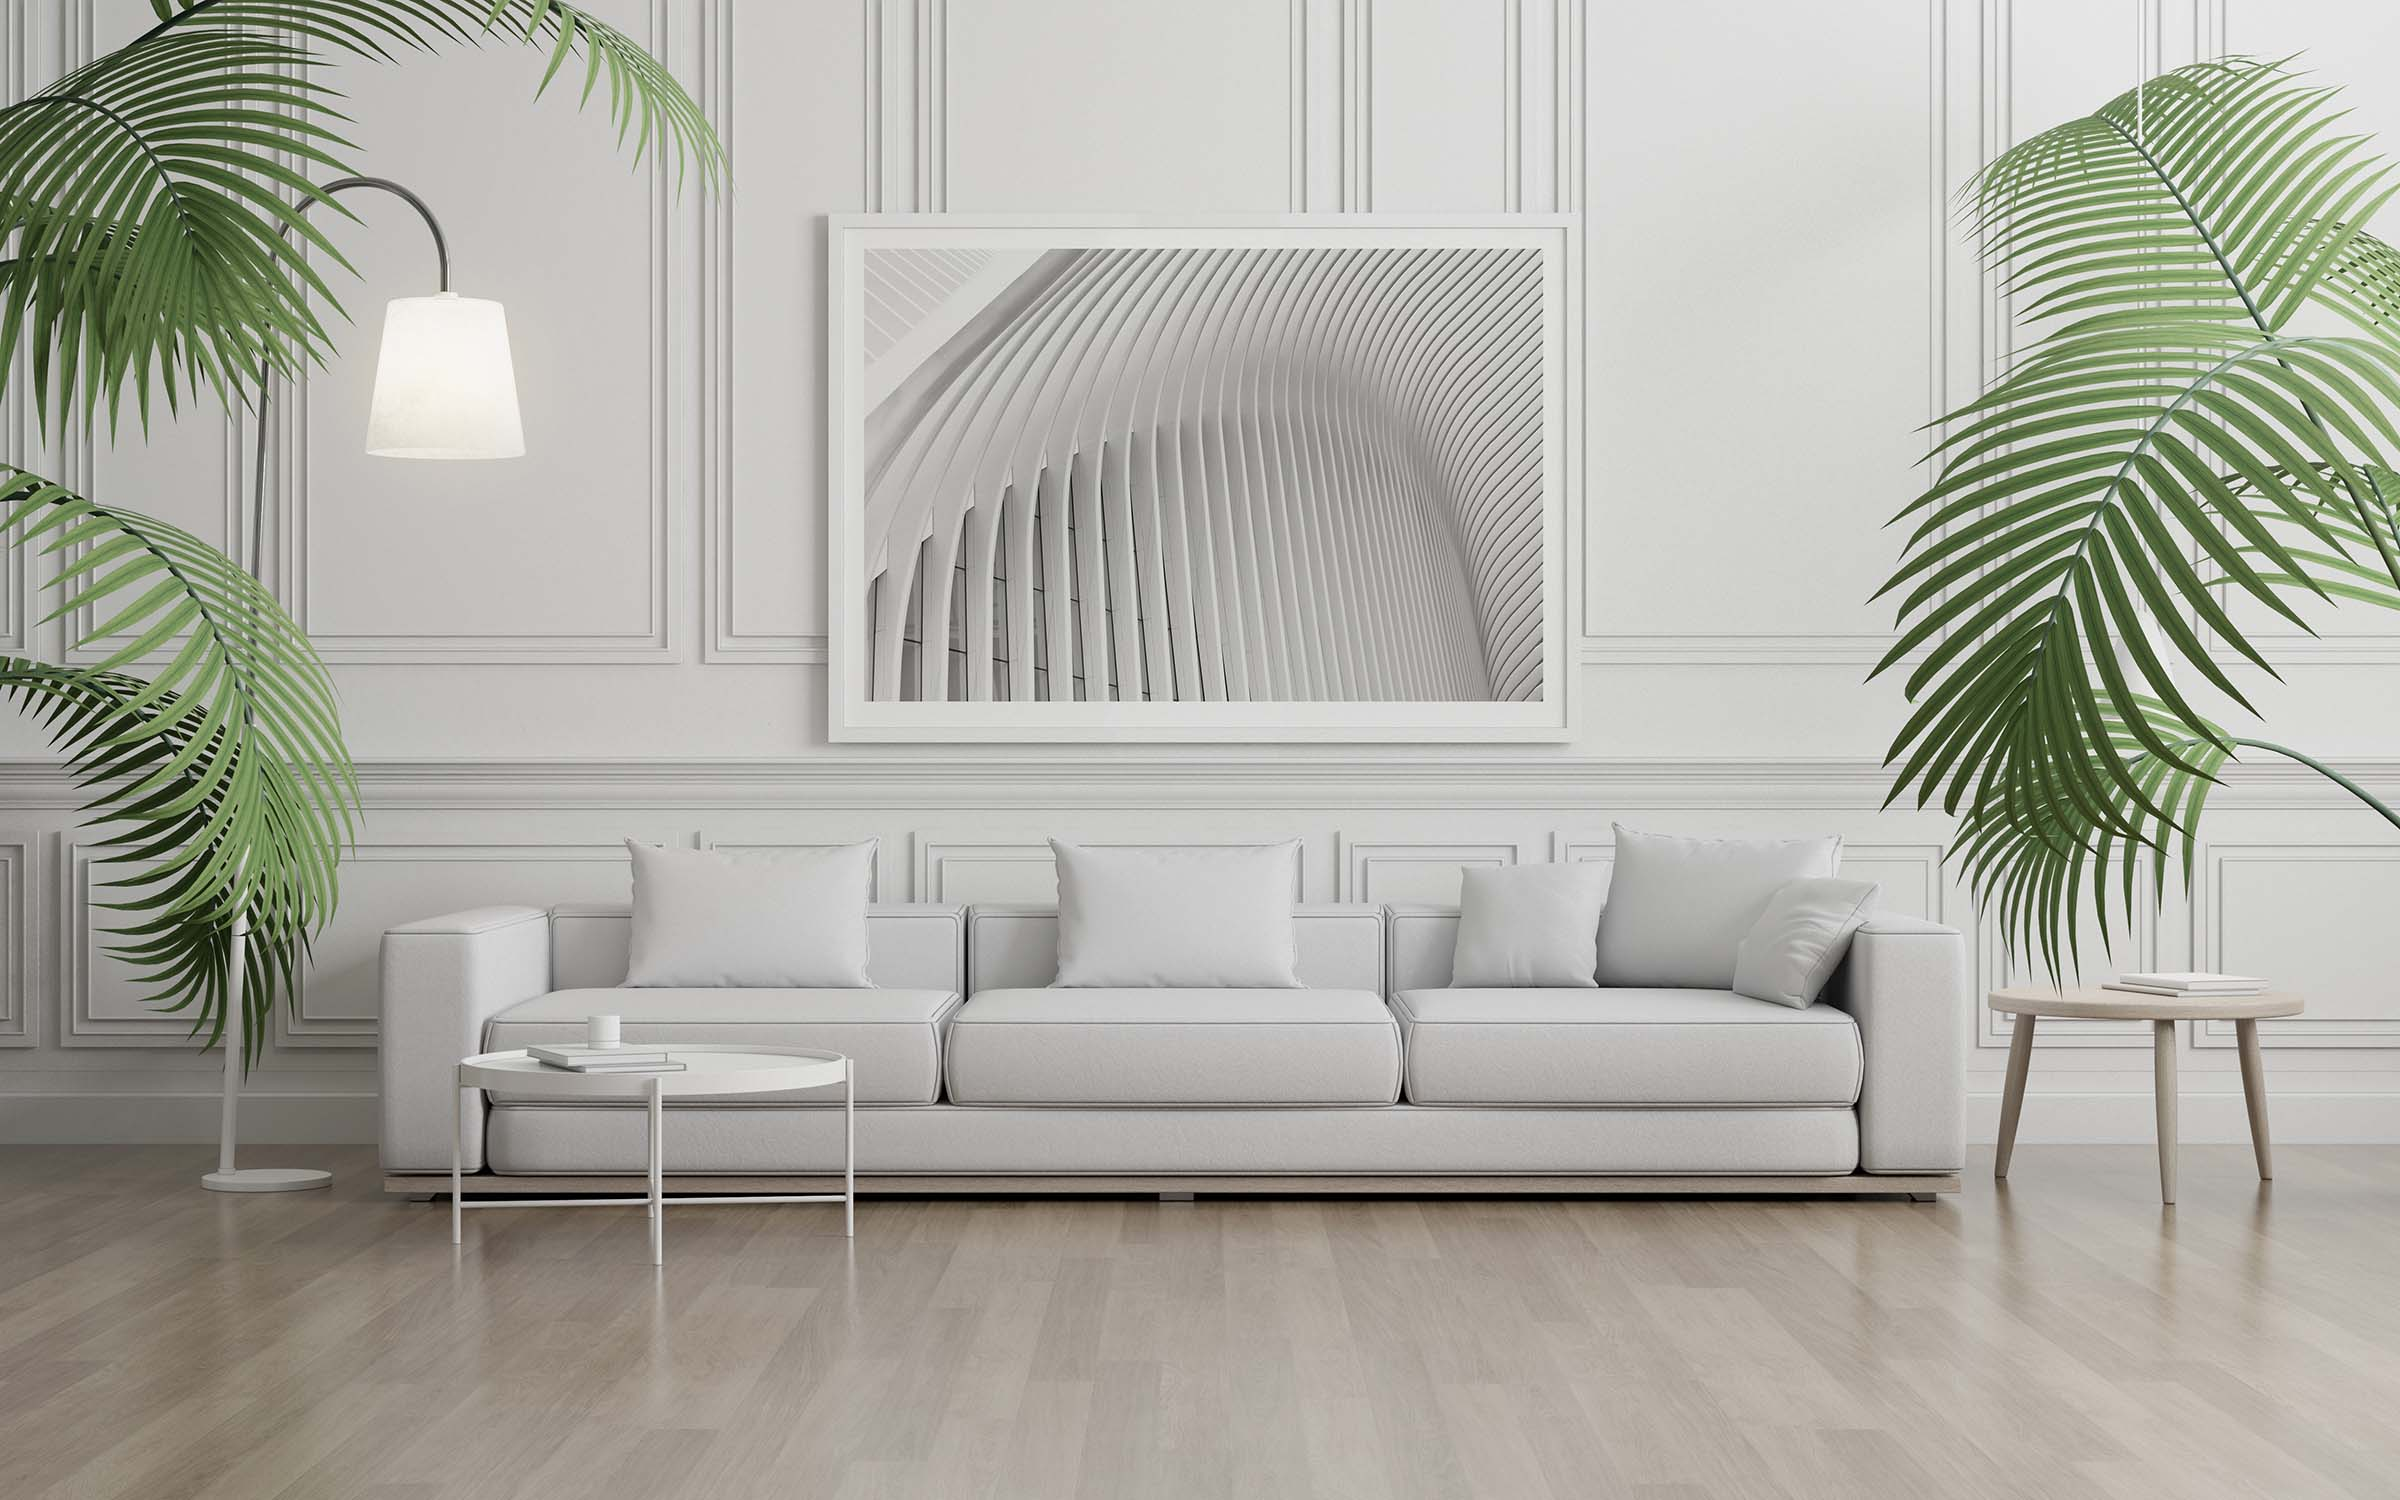 fint art picture framed and sofa with small plant on white classic wall.